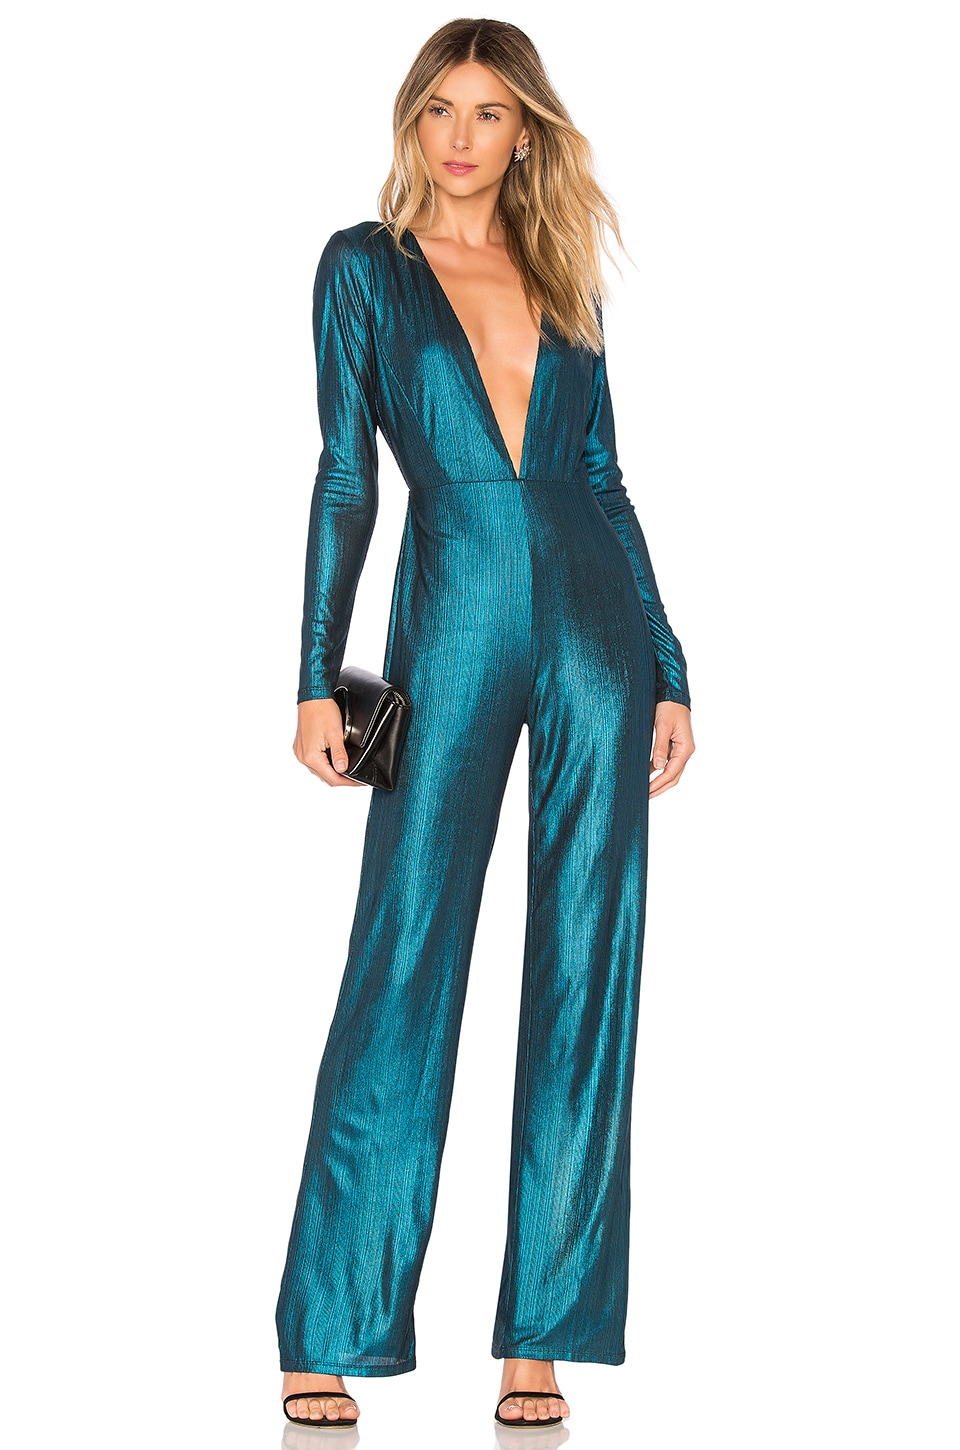 NBD x Naven Maxine Jumpsuit in Teal